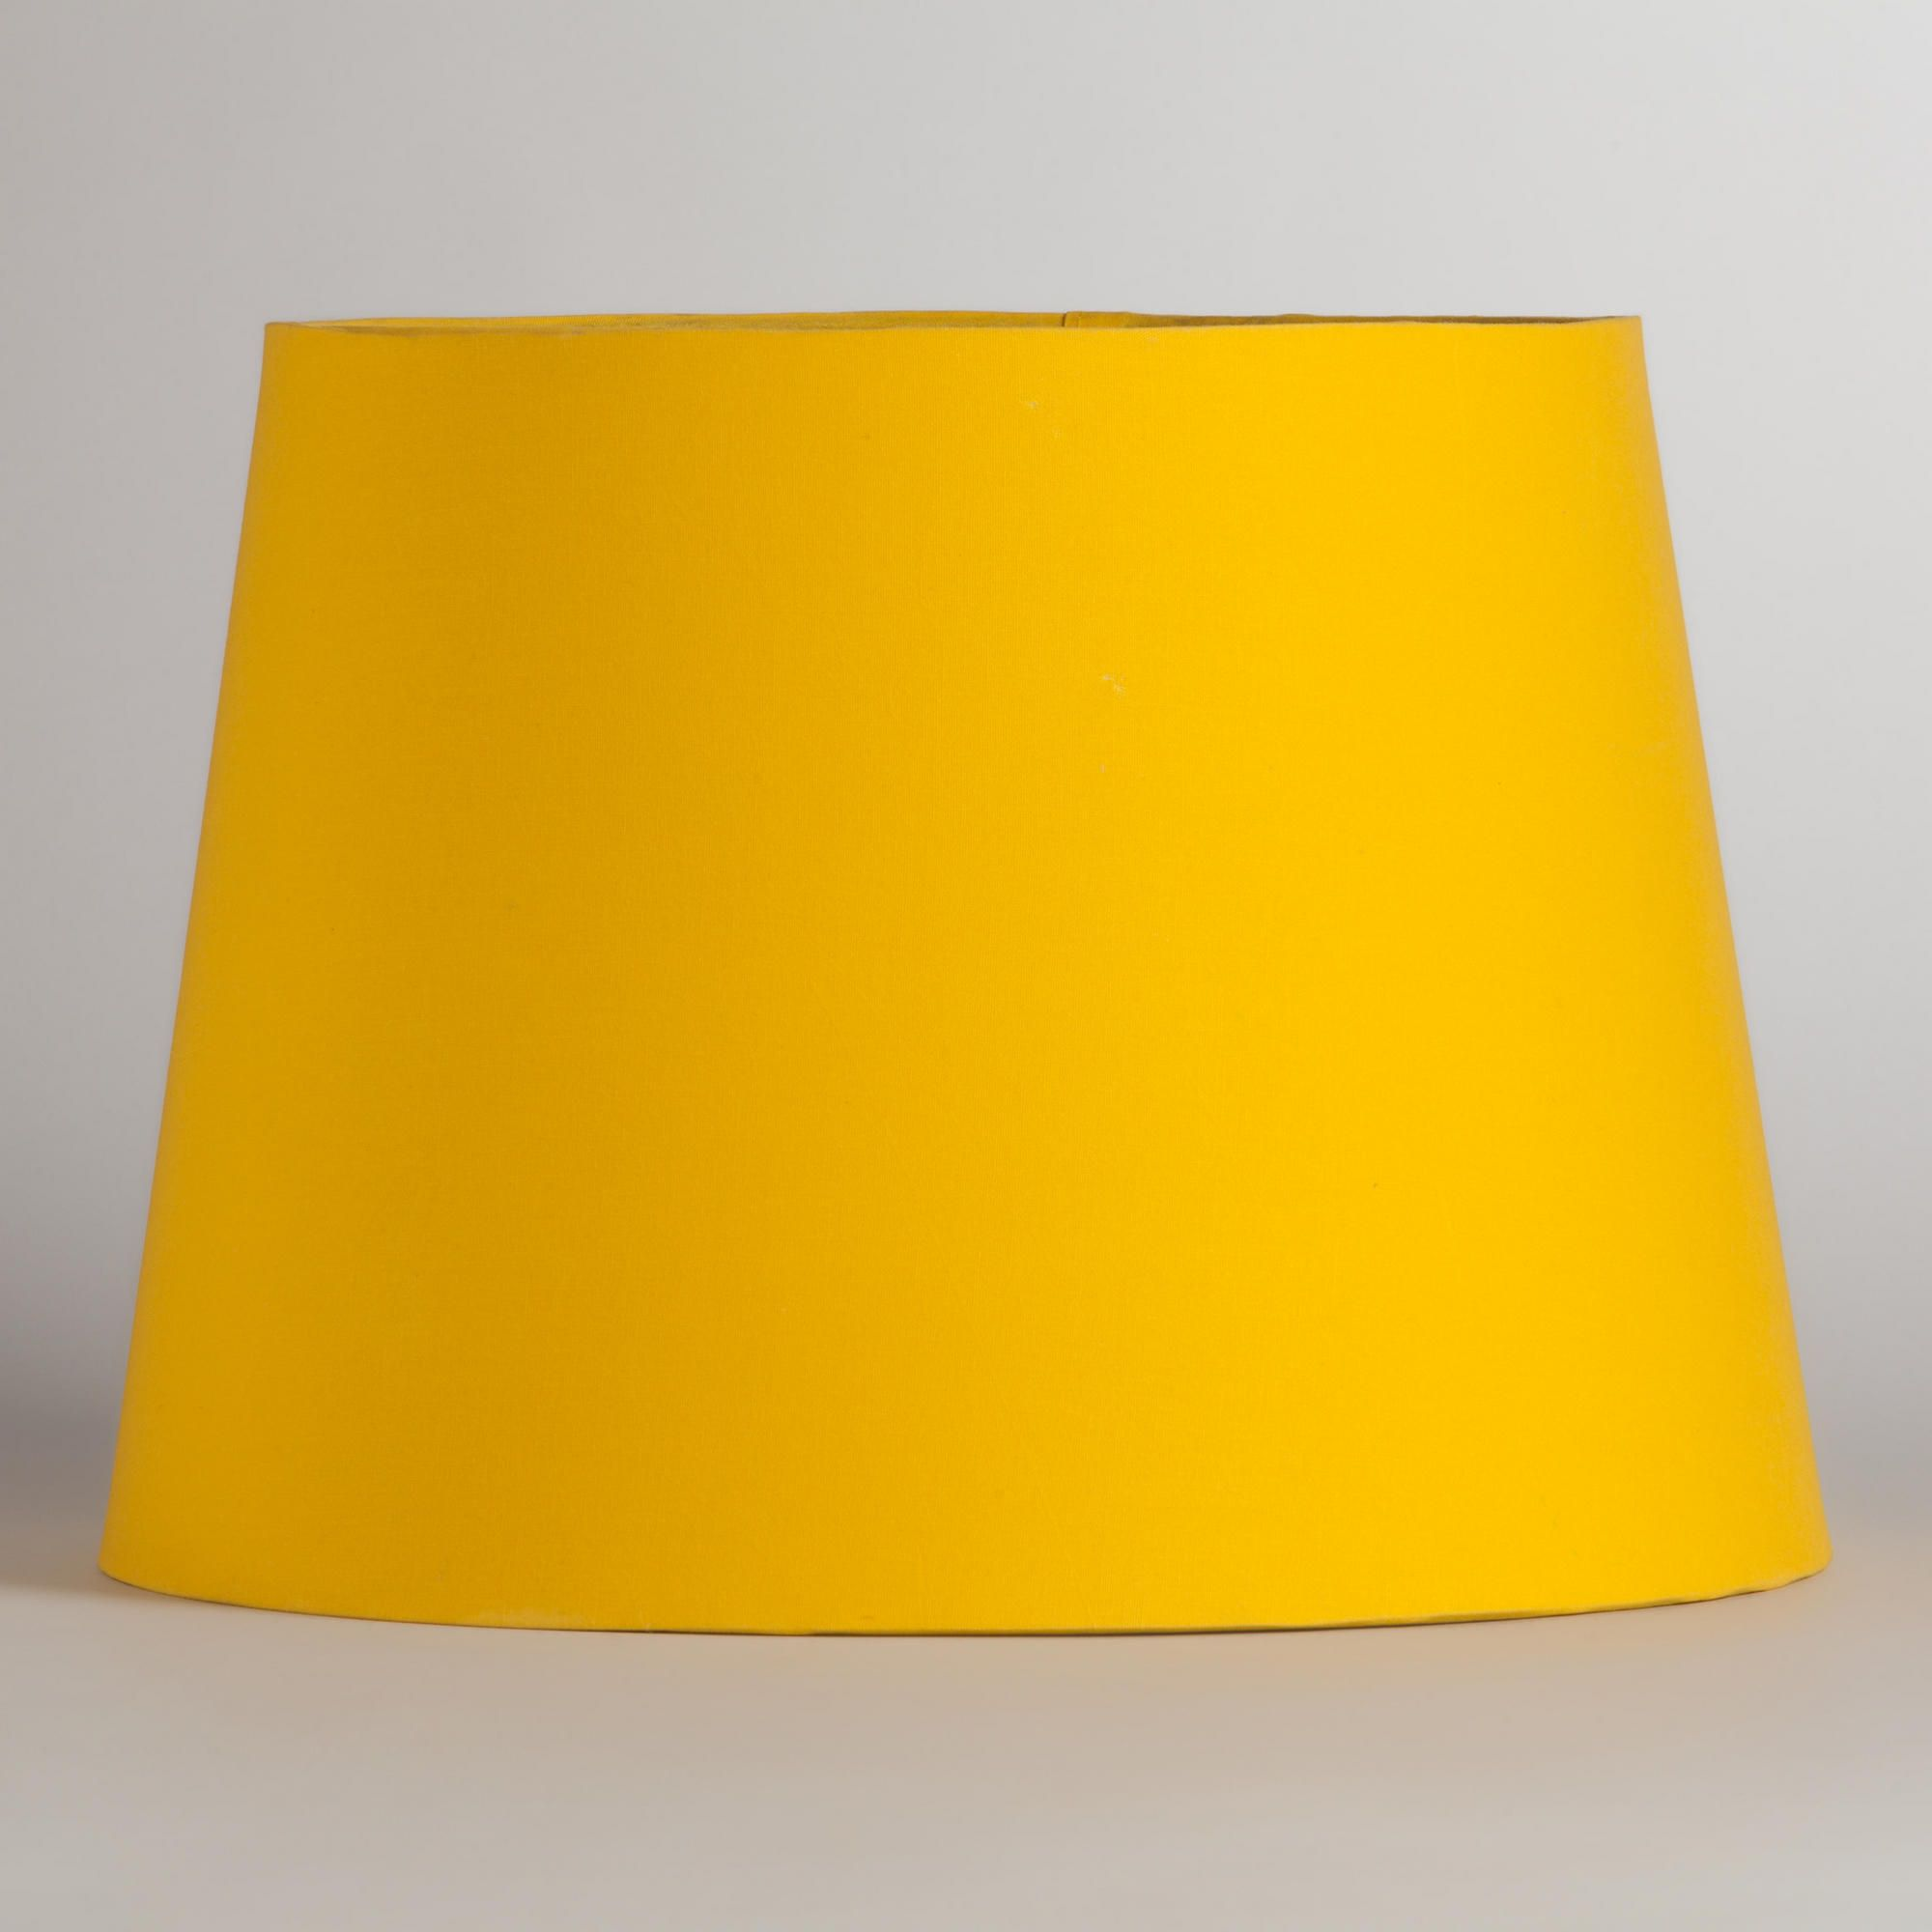 picture shades inspiration targetall shade floor table the yellow mustard base lamp styles desk tfast best for and modern